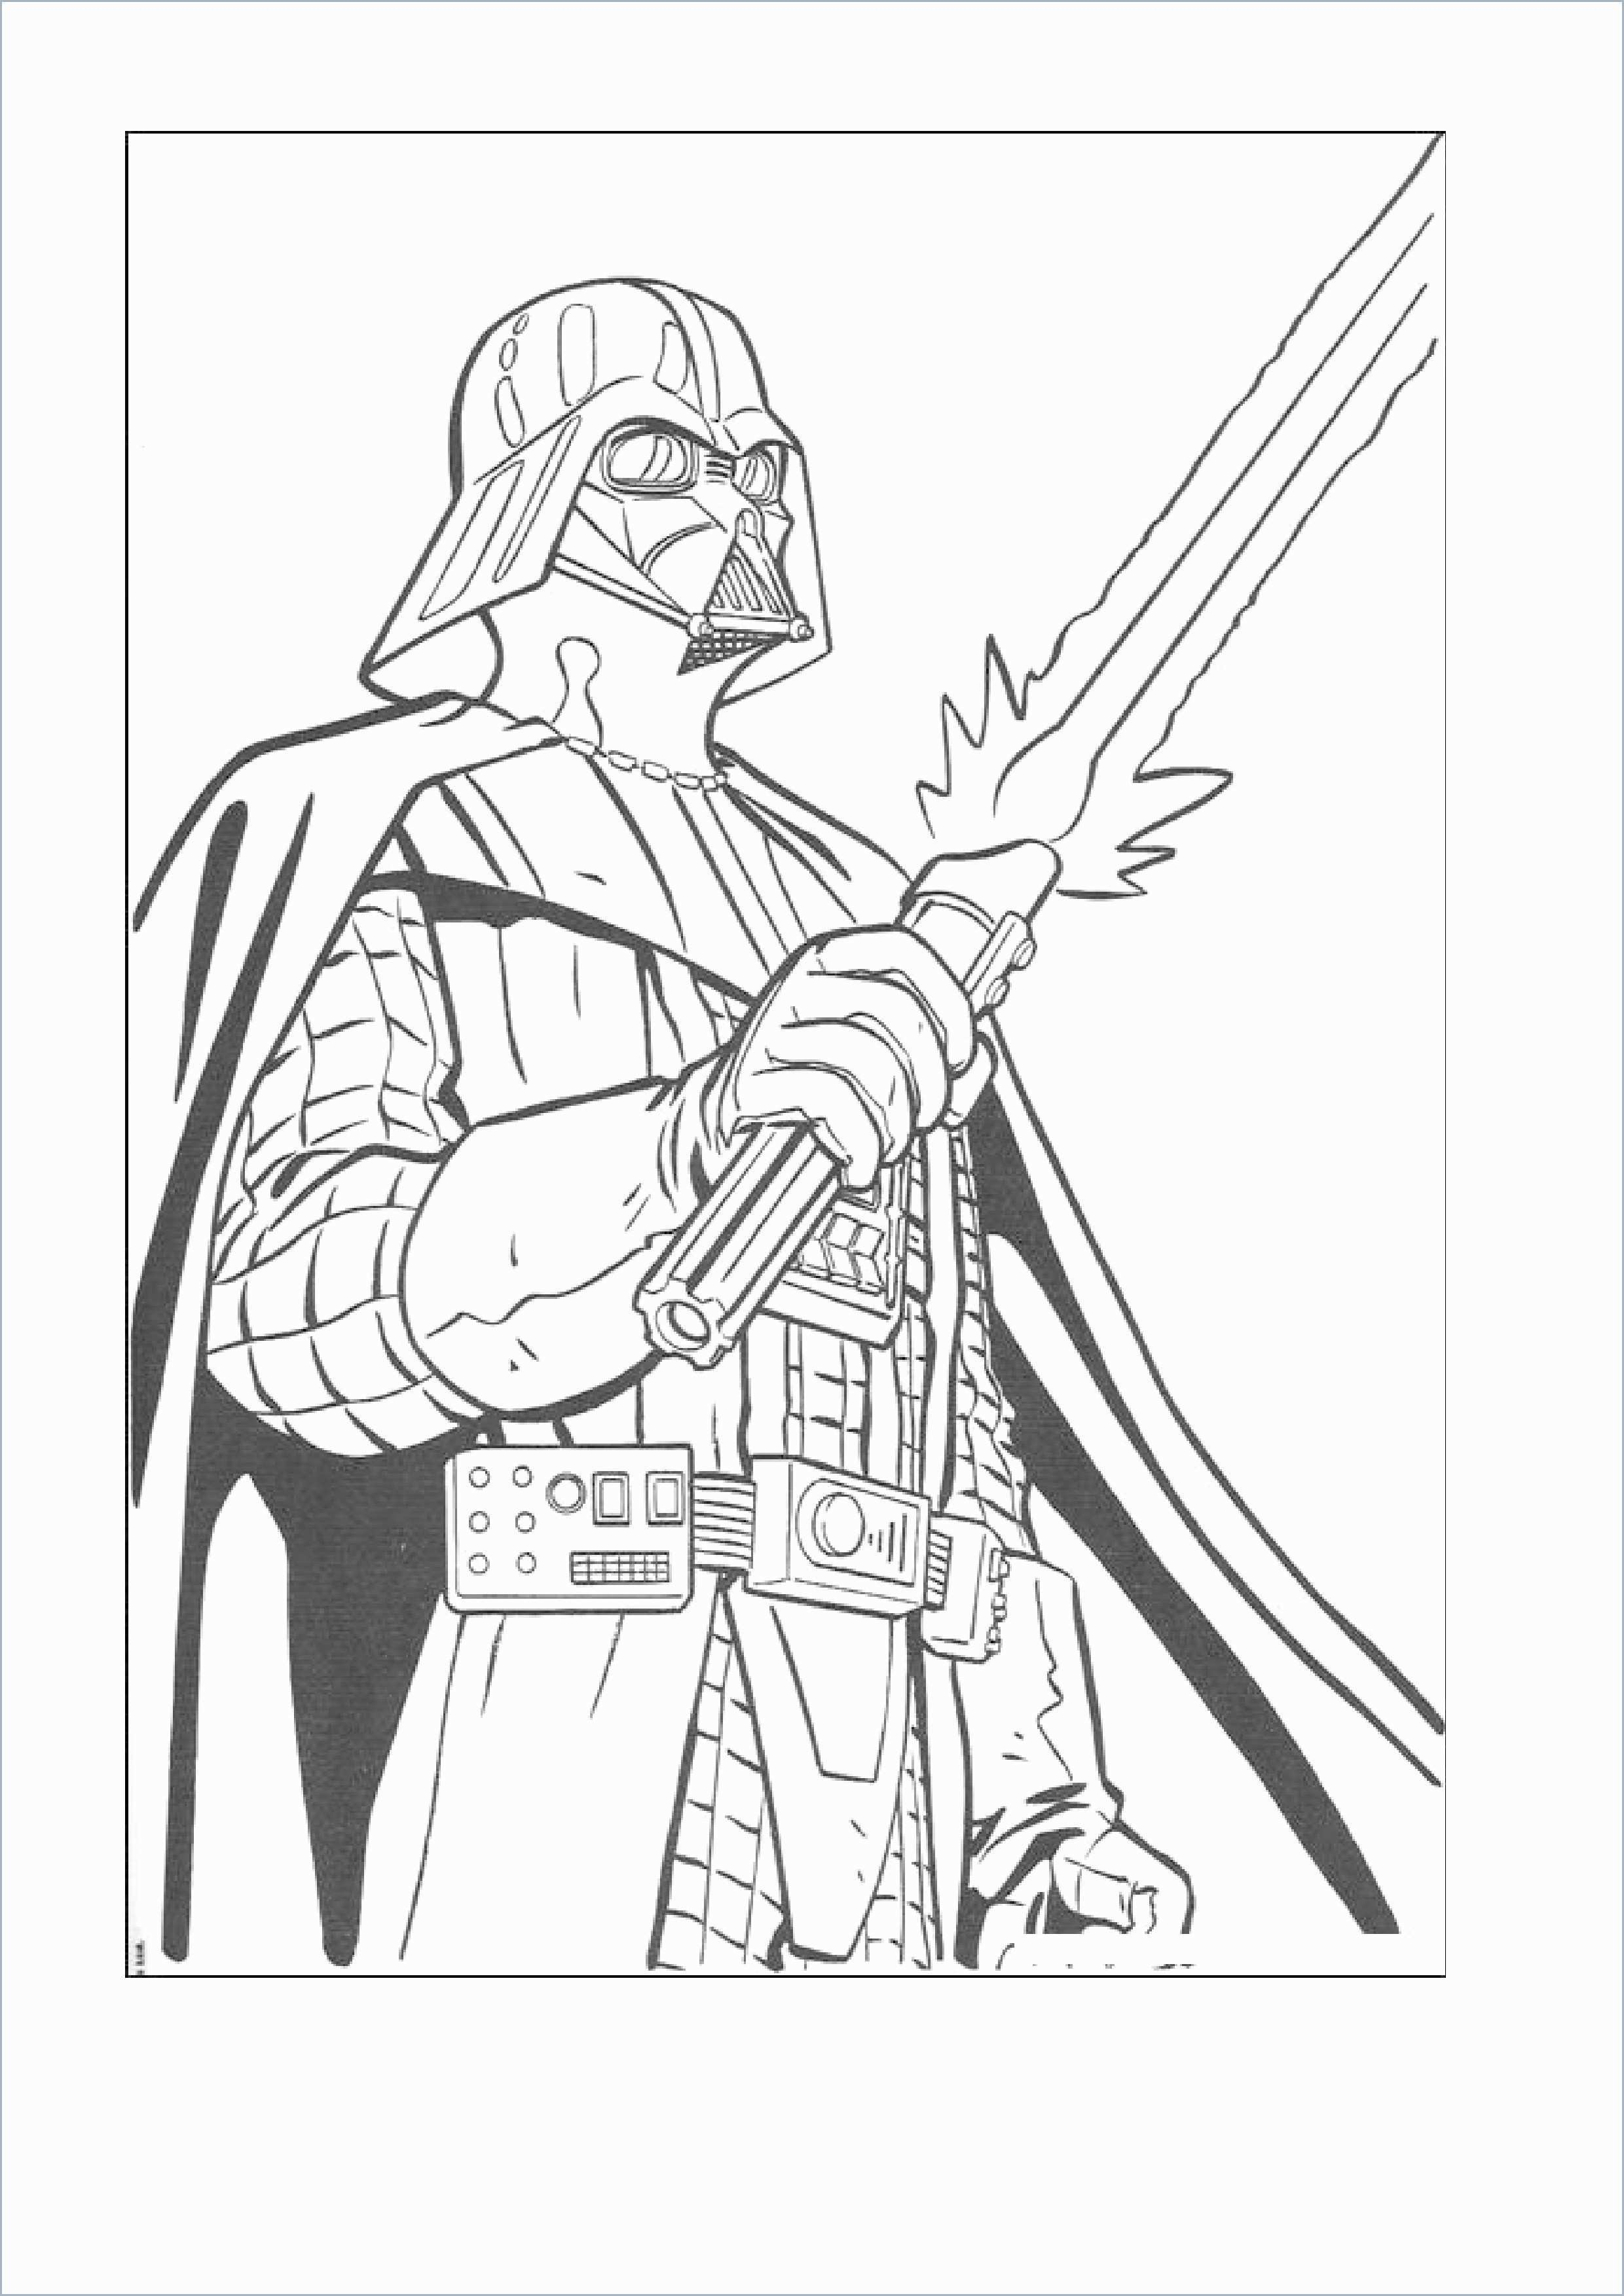 Lego Coloring Pages Star Wars Coloring Pages Star Wars Darth Vader Toys Maul Figure Vintage